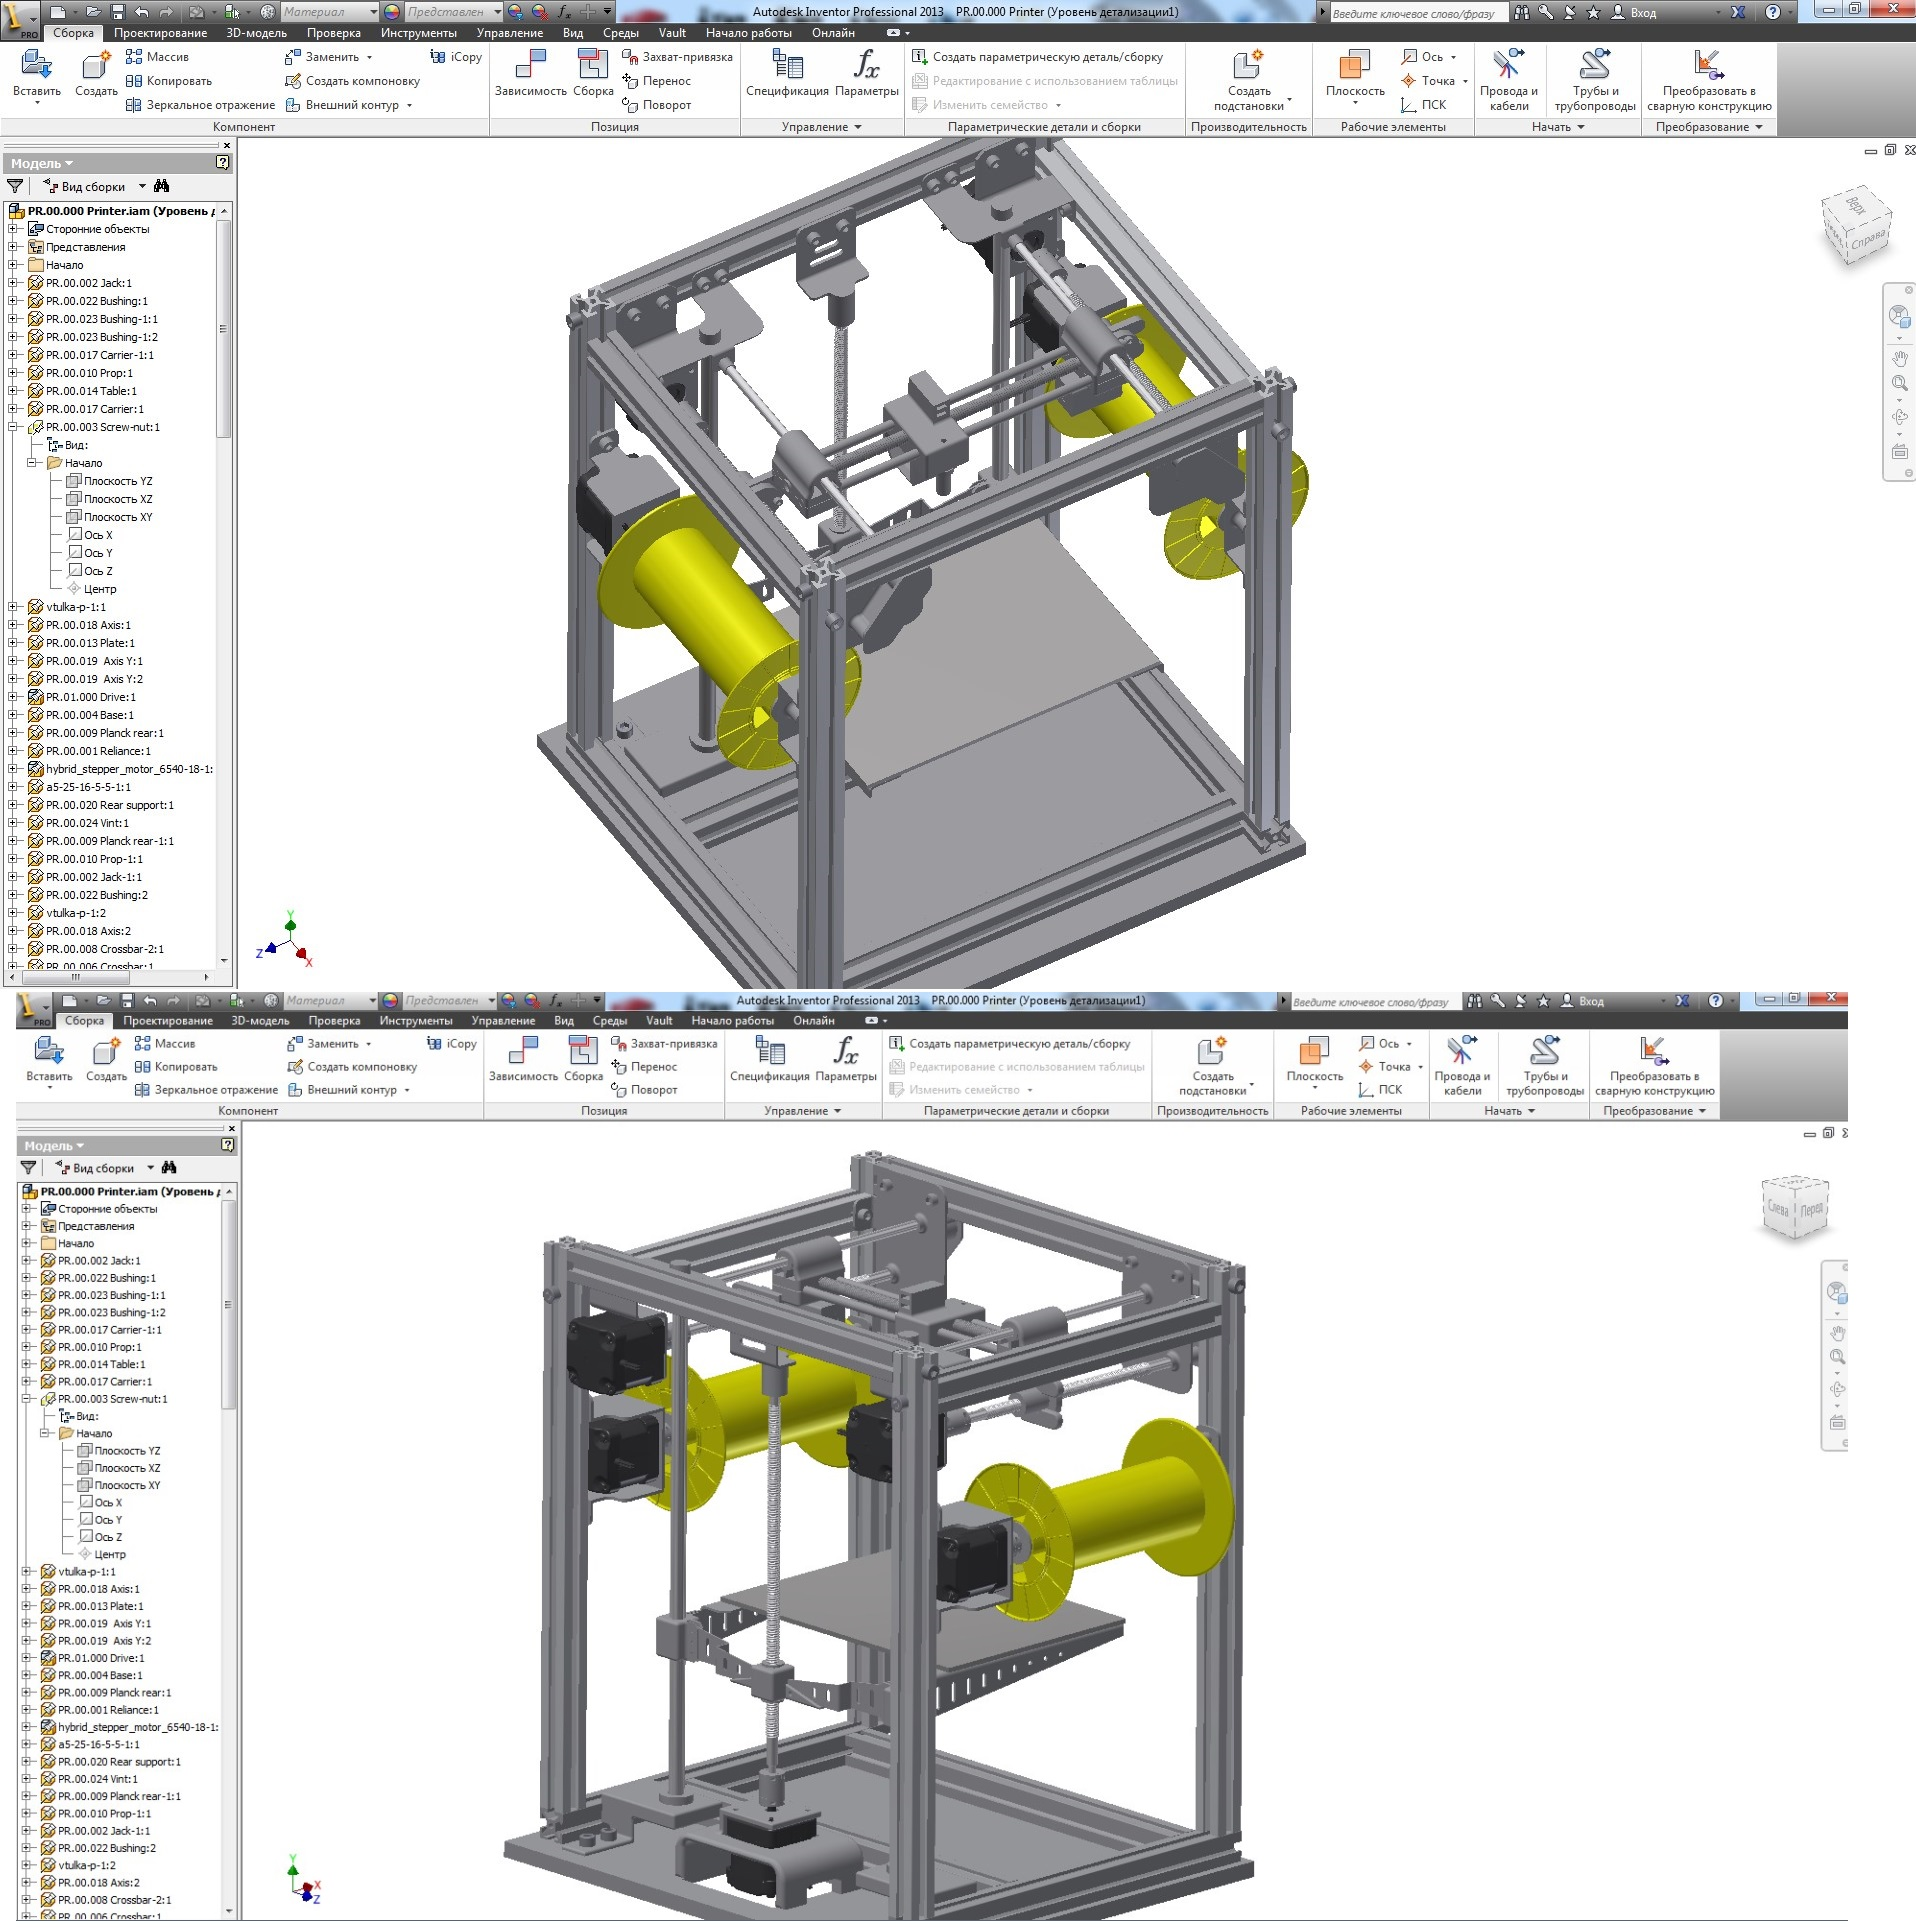 Modeling 3d printer autodesk inventor tkachov engineering 3d printer design software